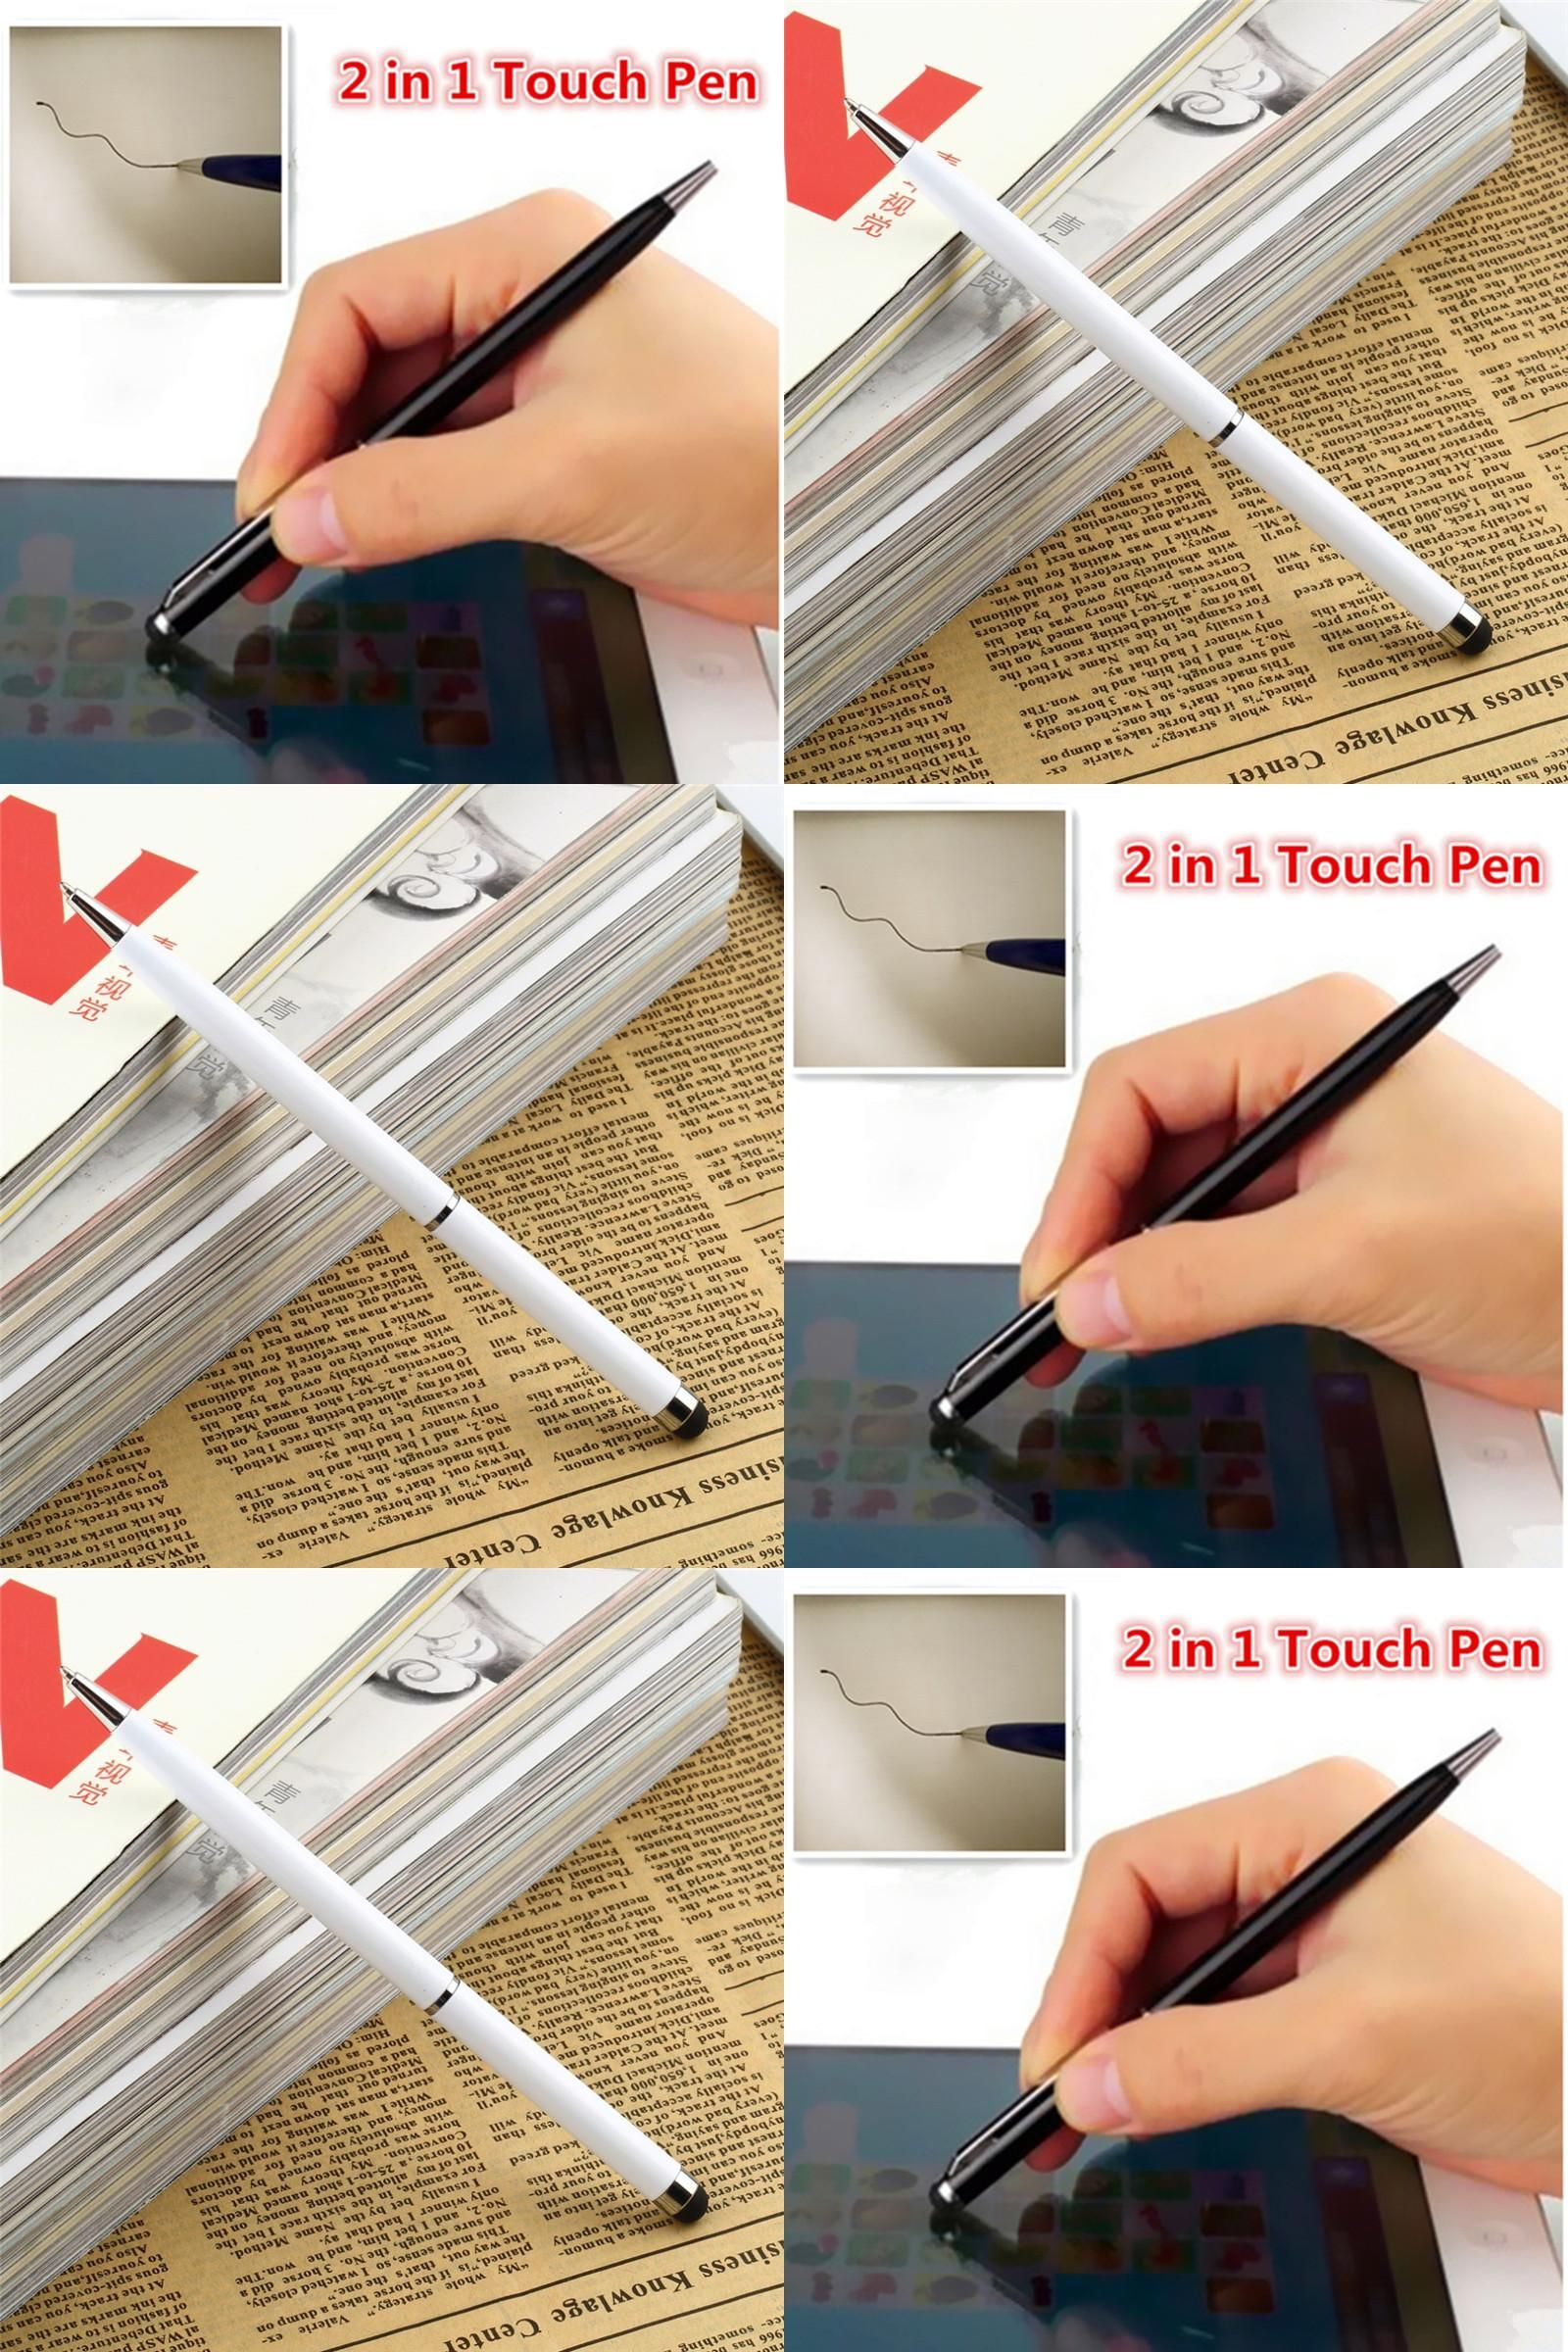 Visit to Buy  2 in 1 Mini Universal Tablets Touch Stylus Pen drawing Ball 4b1f9423c8f3f